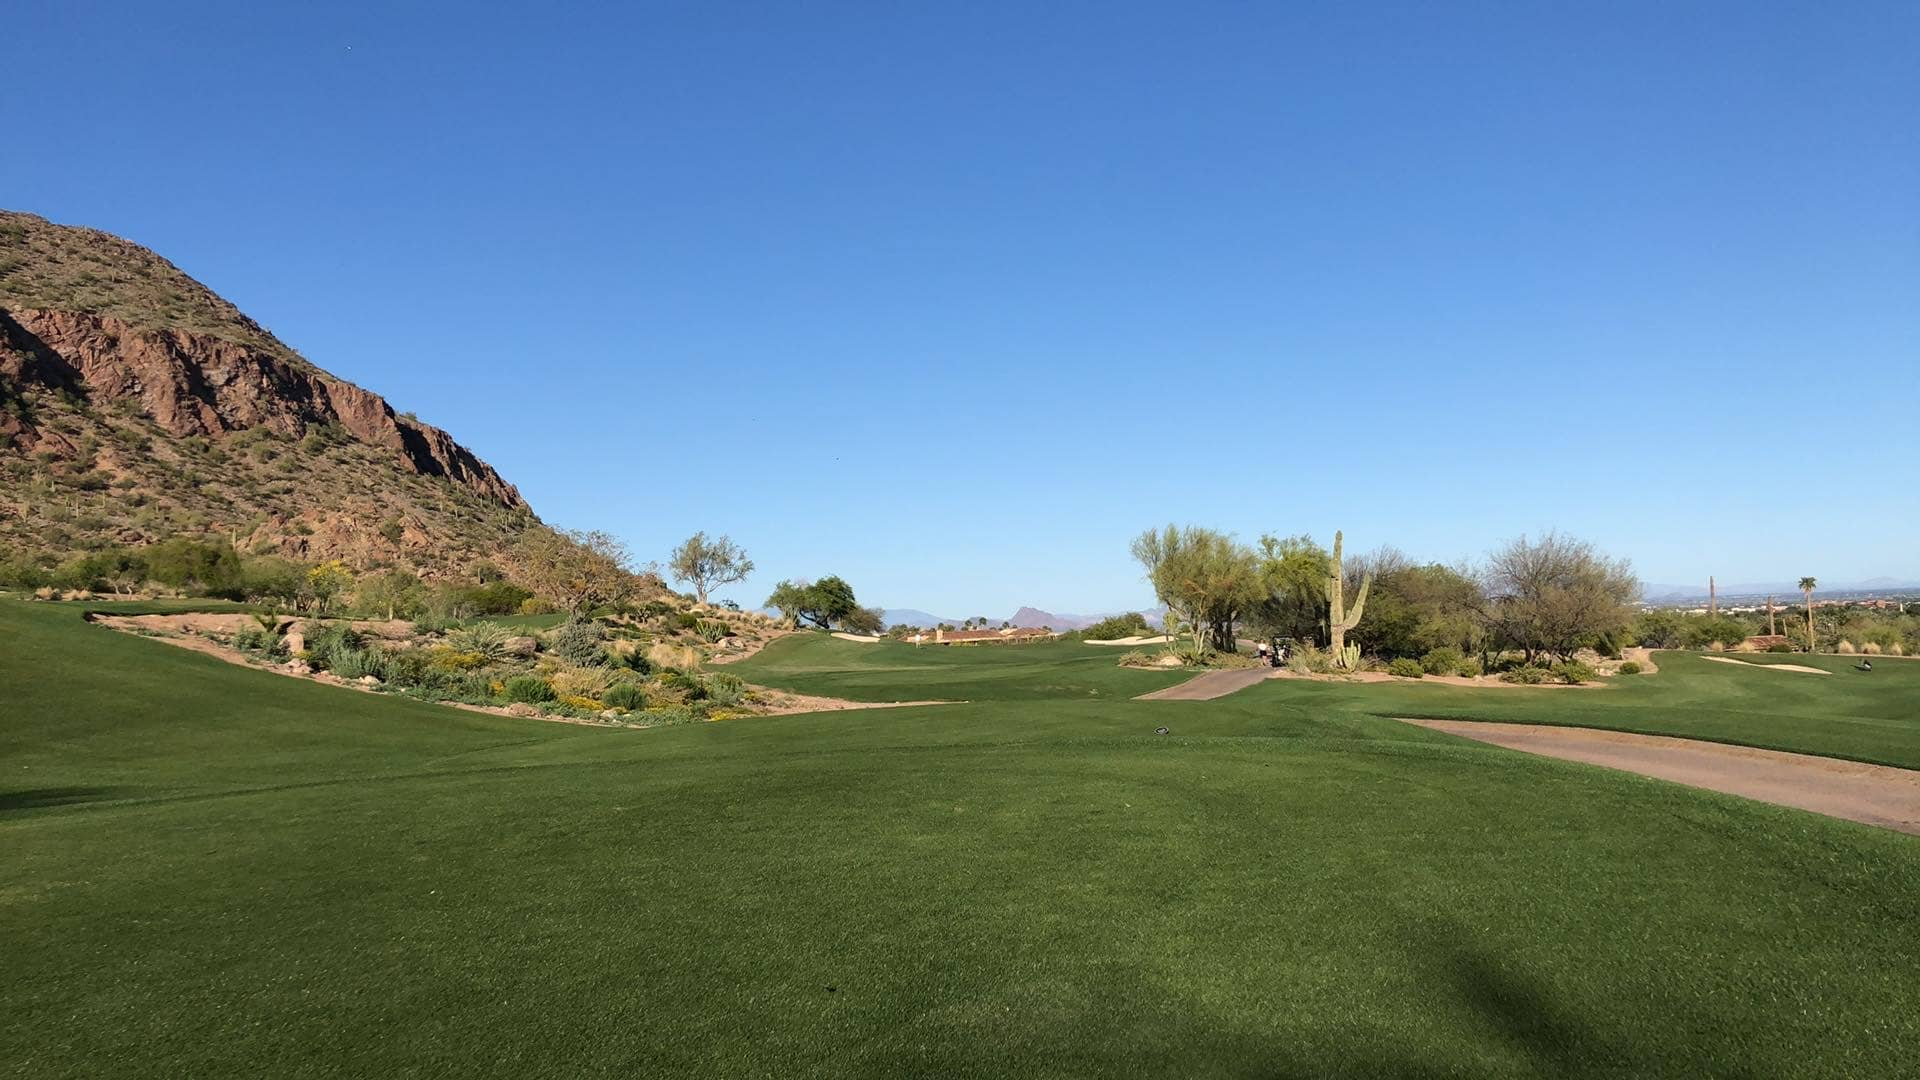 Rent Golf Clubs in Phoenix | Rent Golf Clubs in Scottsdale